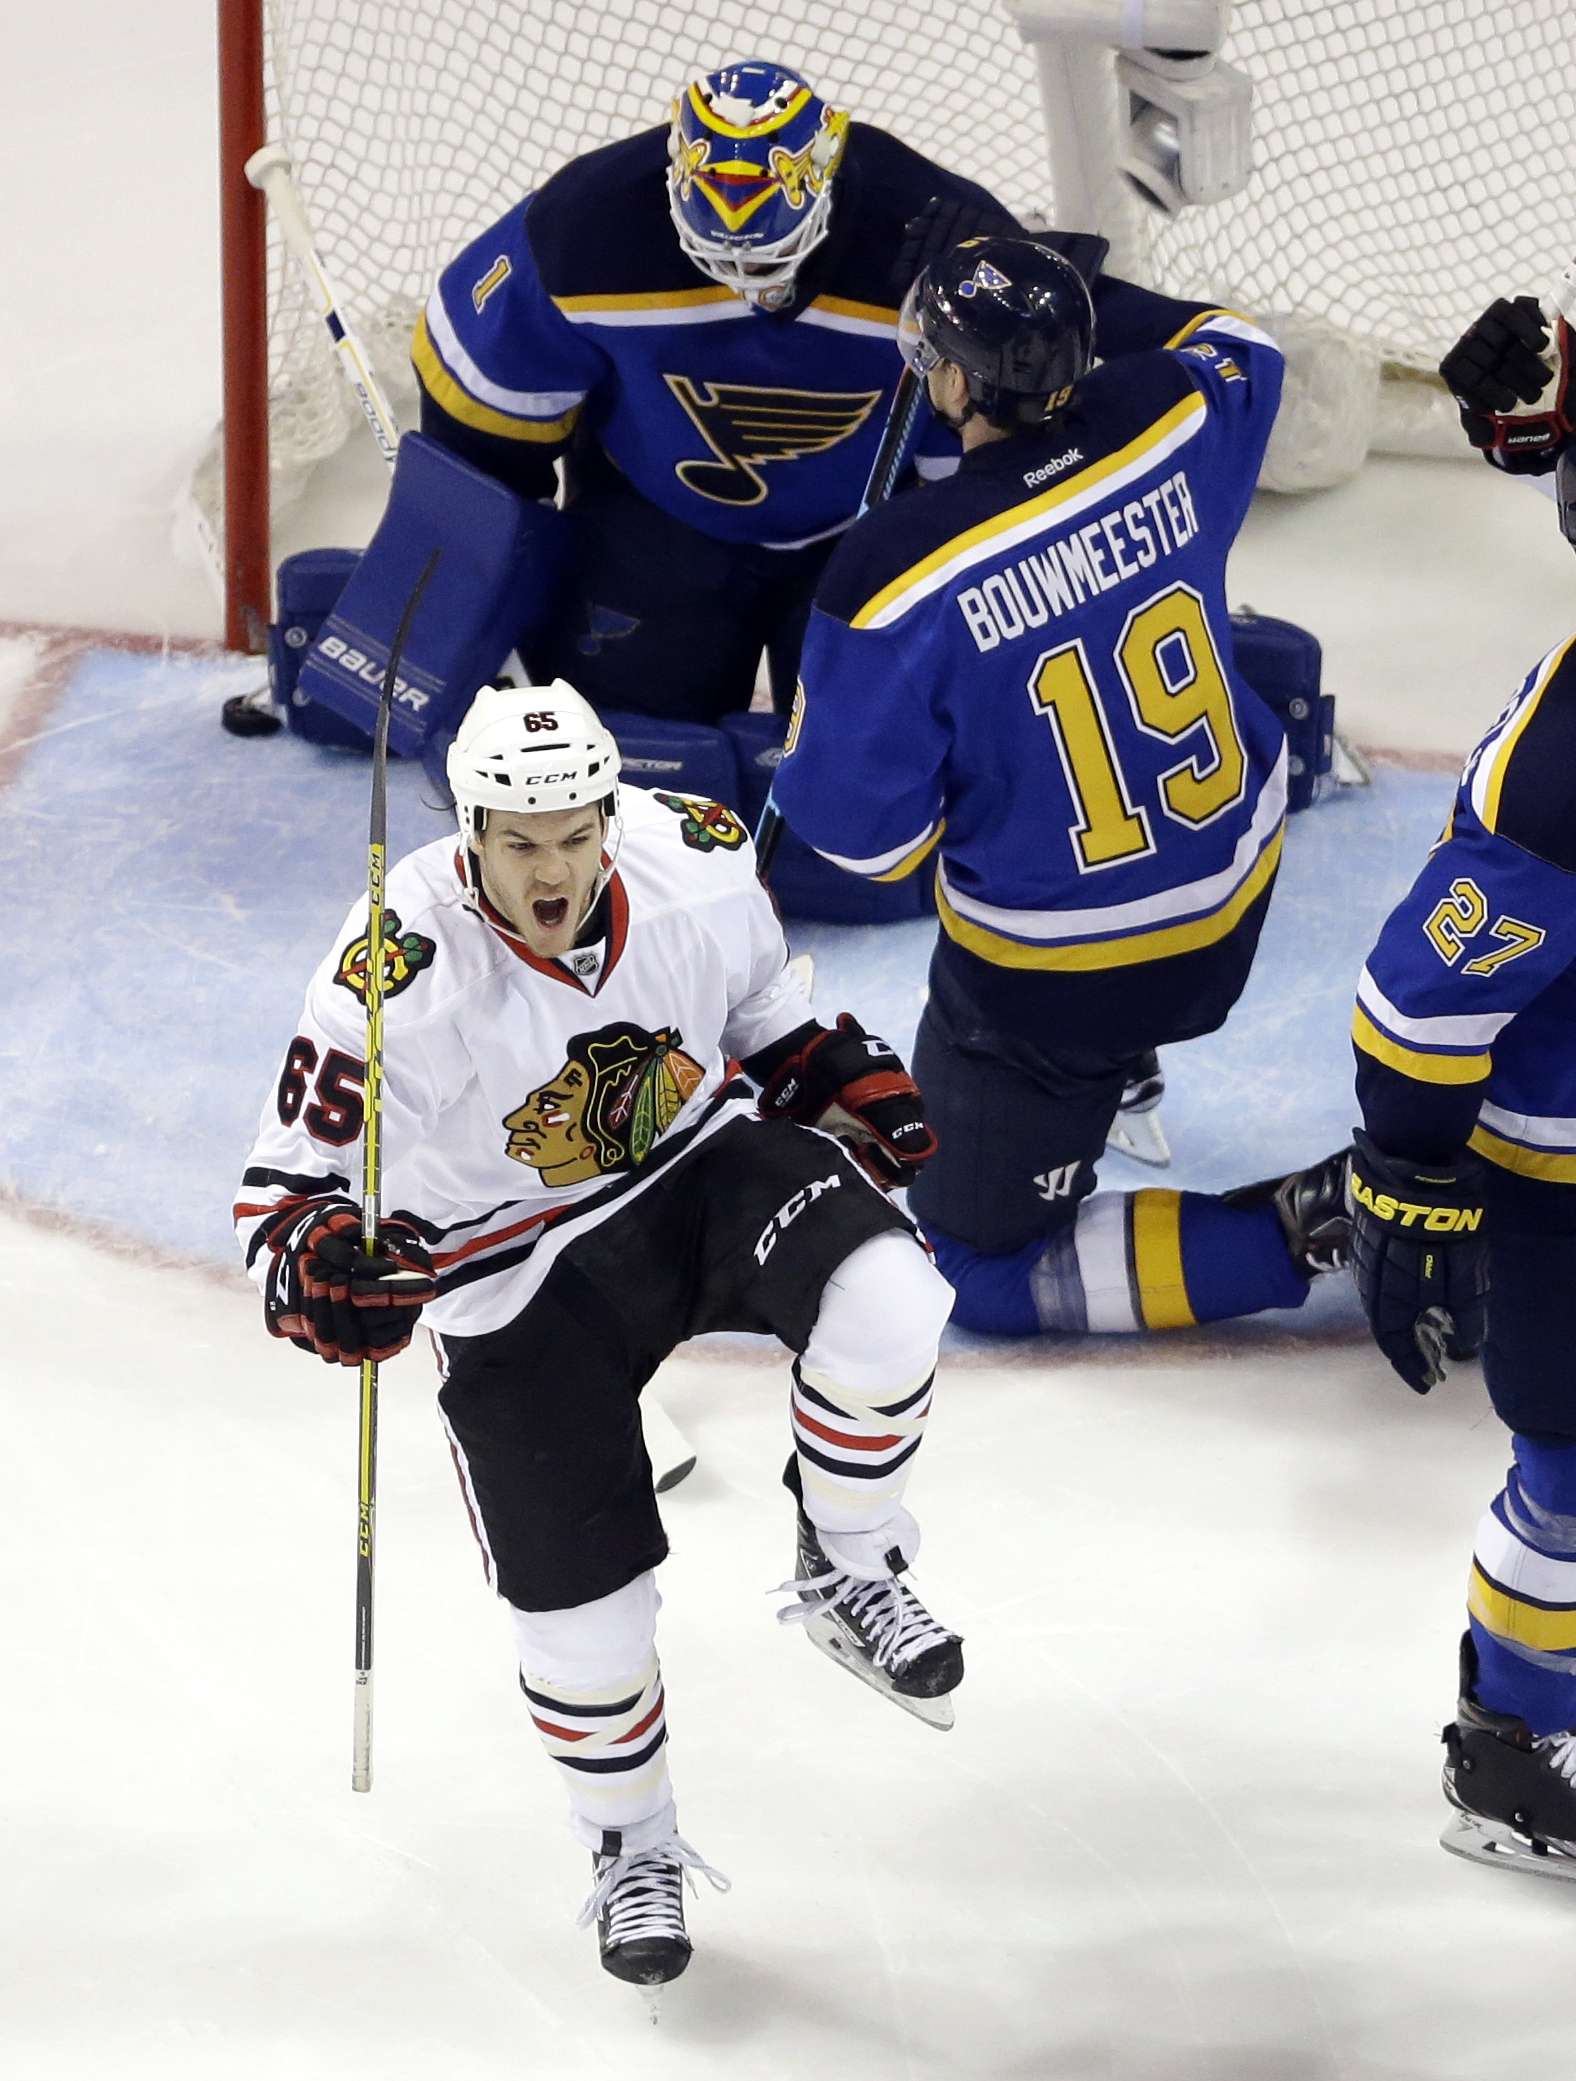 Chicago Blackhawks' Andrew Shaw (65) celebrates after scoring past St. Louis Blues goalie Brian Elliott and Jay Bouwmeester (19) during the second period in Game 7 of an NHL hockey first-round Stanley Cup playoff series Monday, April 25, 2016, in St. Loui